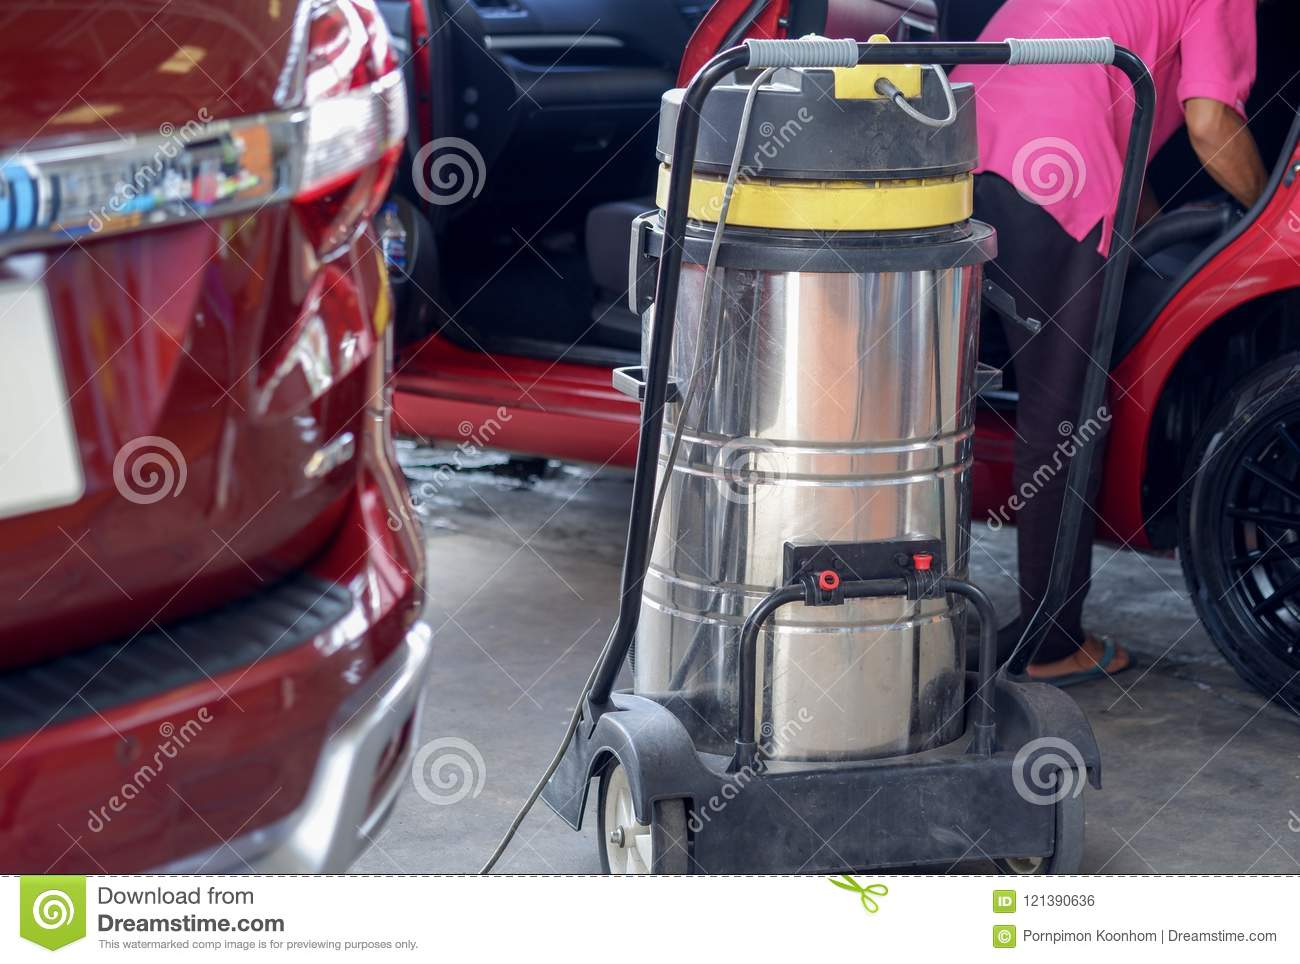 Car Wash Vacuum Cleaner >> The Man Use Vacuum Cleaner Stock Photo Image Of Machine 121390636